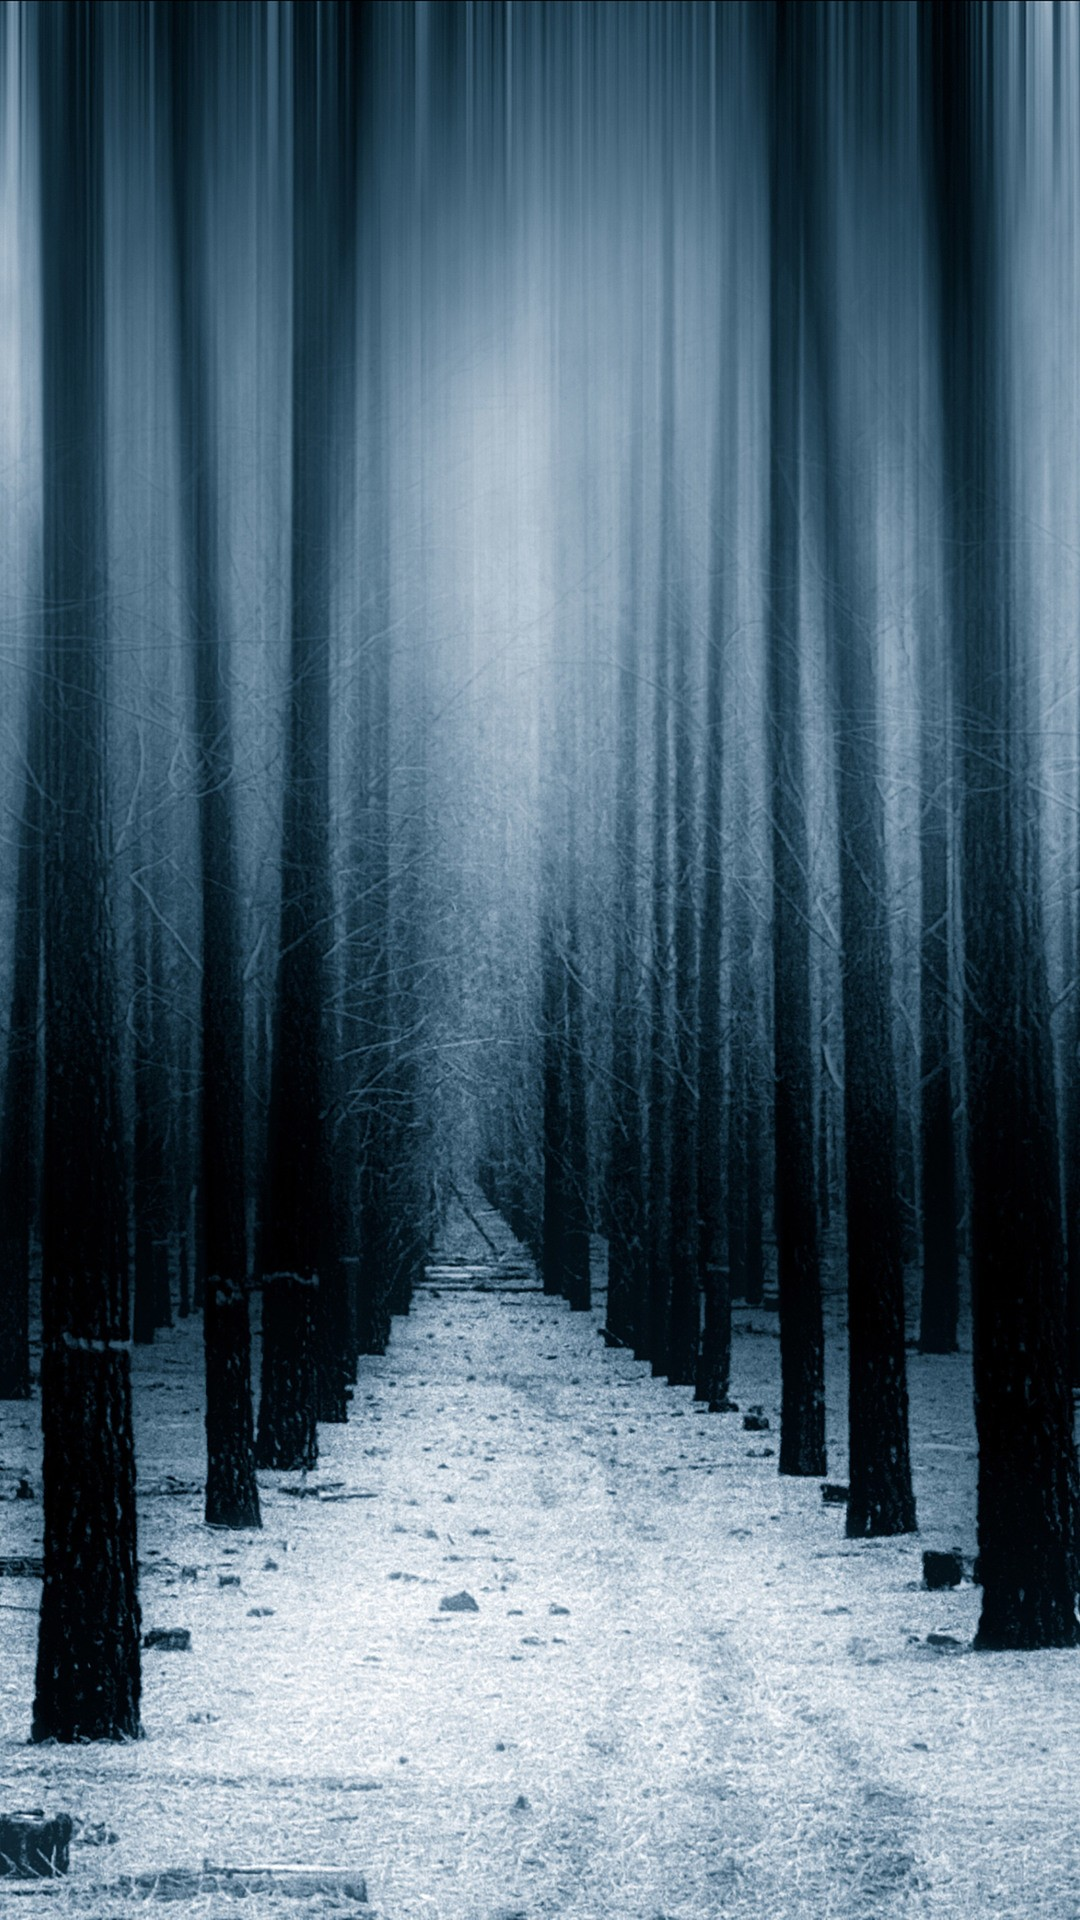 Dark Forest Woods Snow Winter 8k Vv Wallpaper 1080x1920 380x676